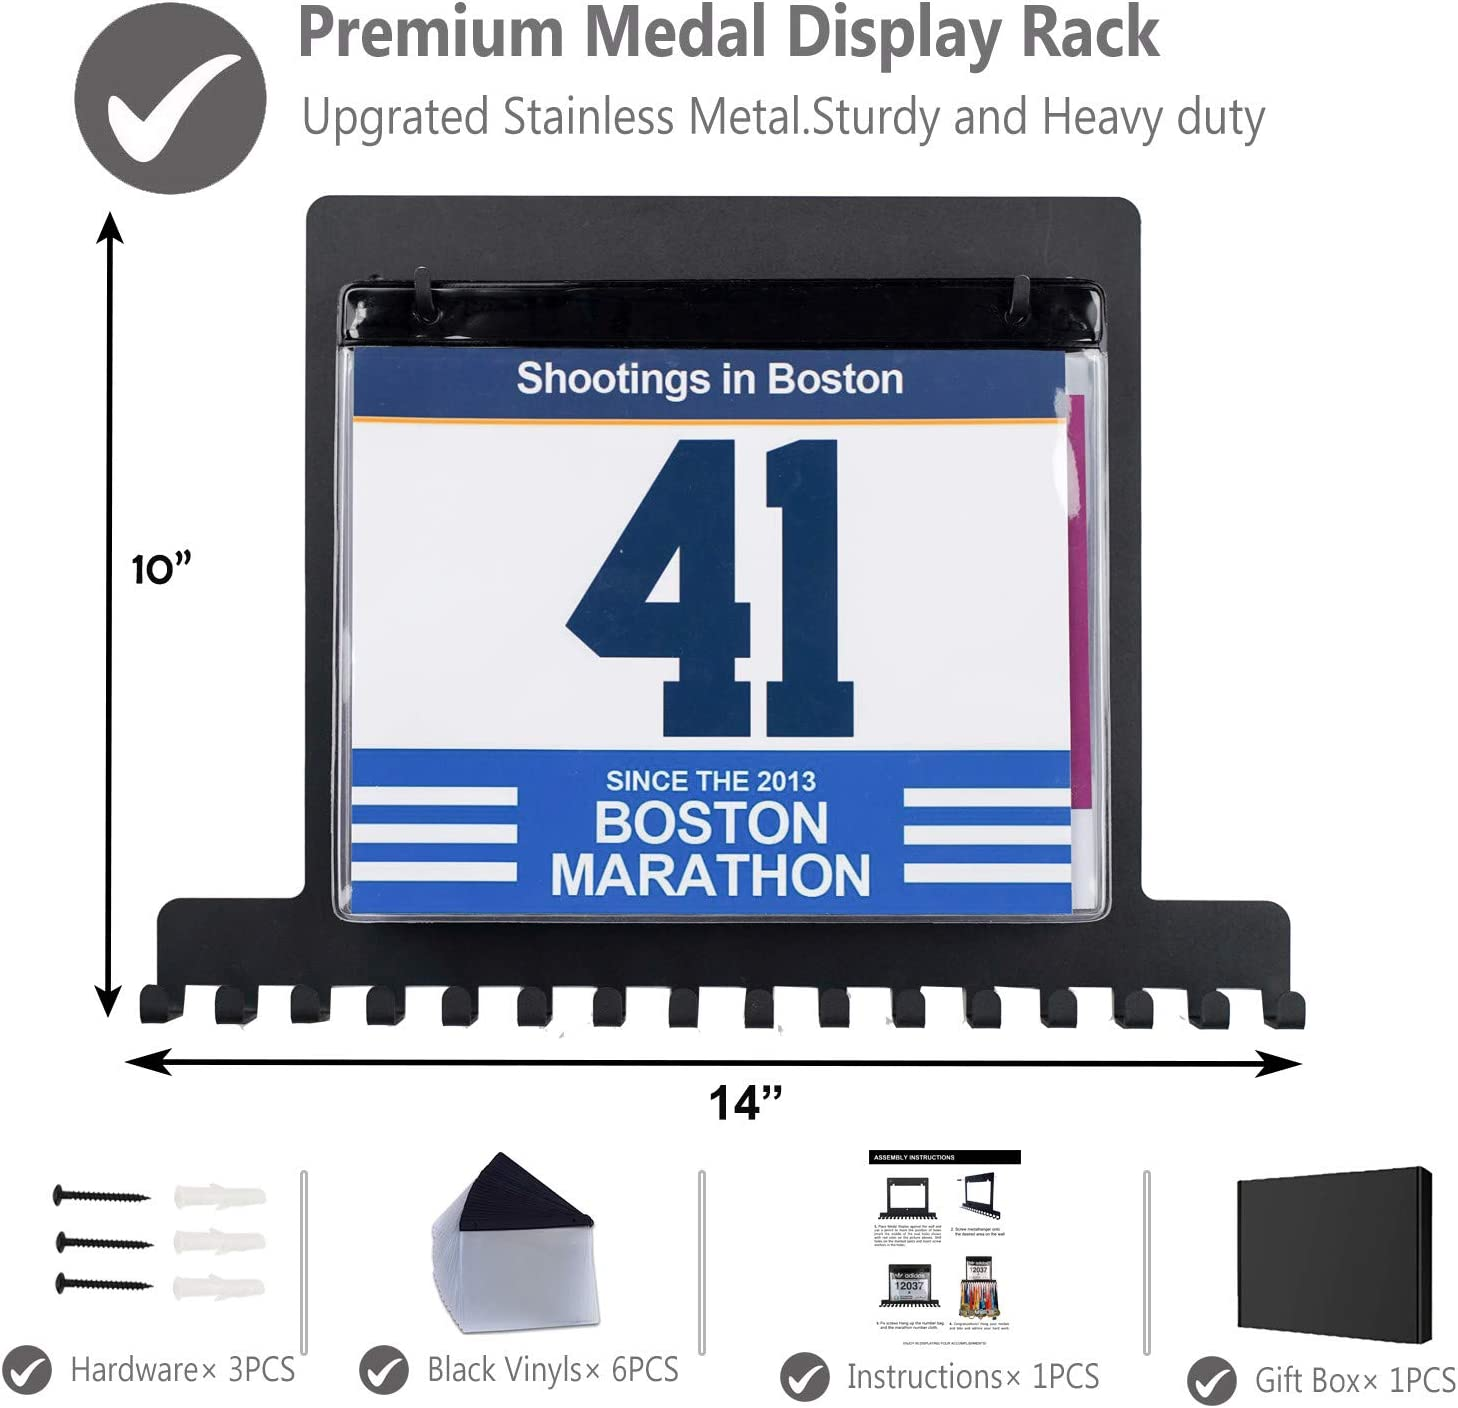 Marathon Running Wrestling Racing Award Medal Display Rack and Trophy Shelf Lapetale Fashion Bib Medal Award Display Shelf Rack Holder,Trophy and Medal Display Ribbon Rack Hanger with Vinyls